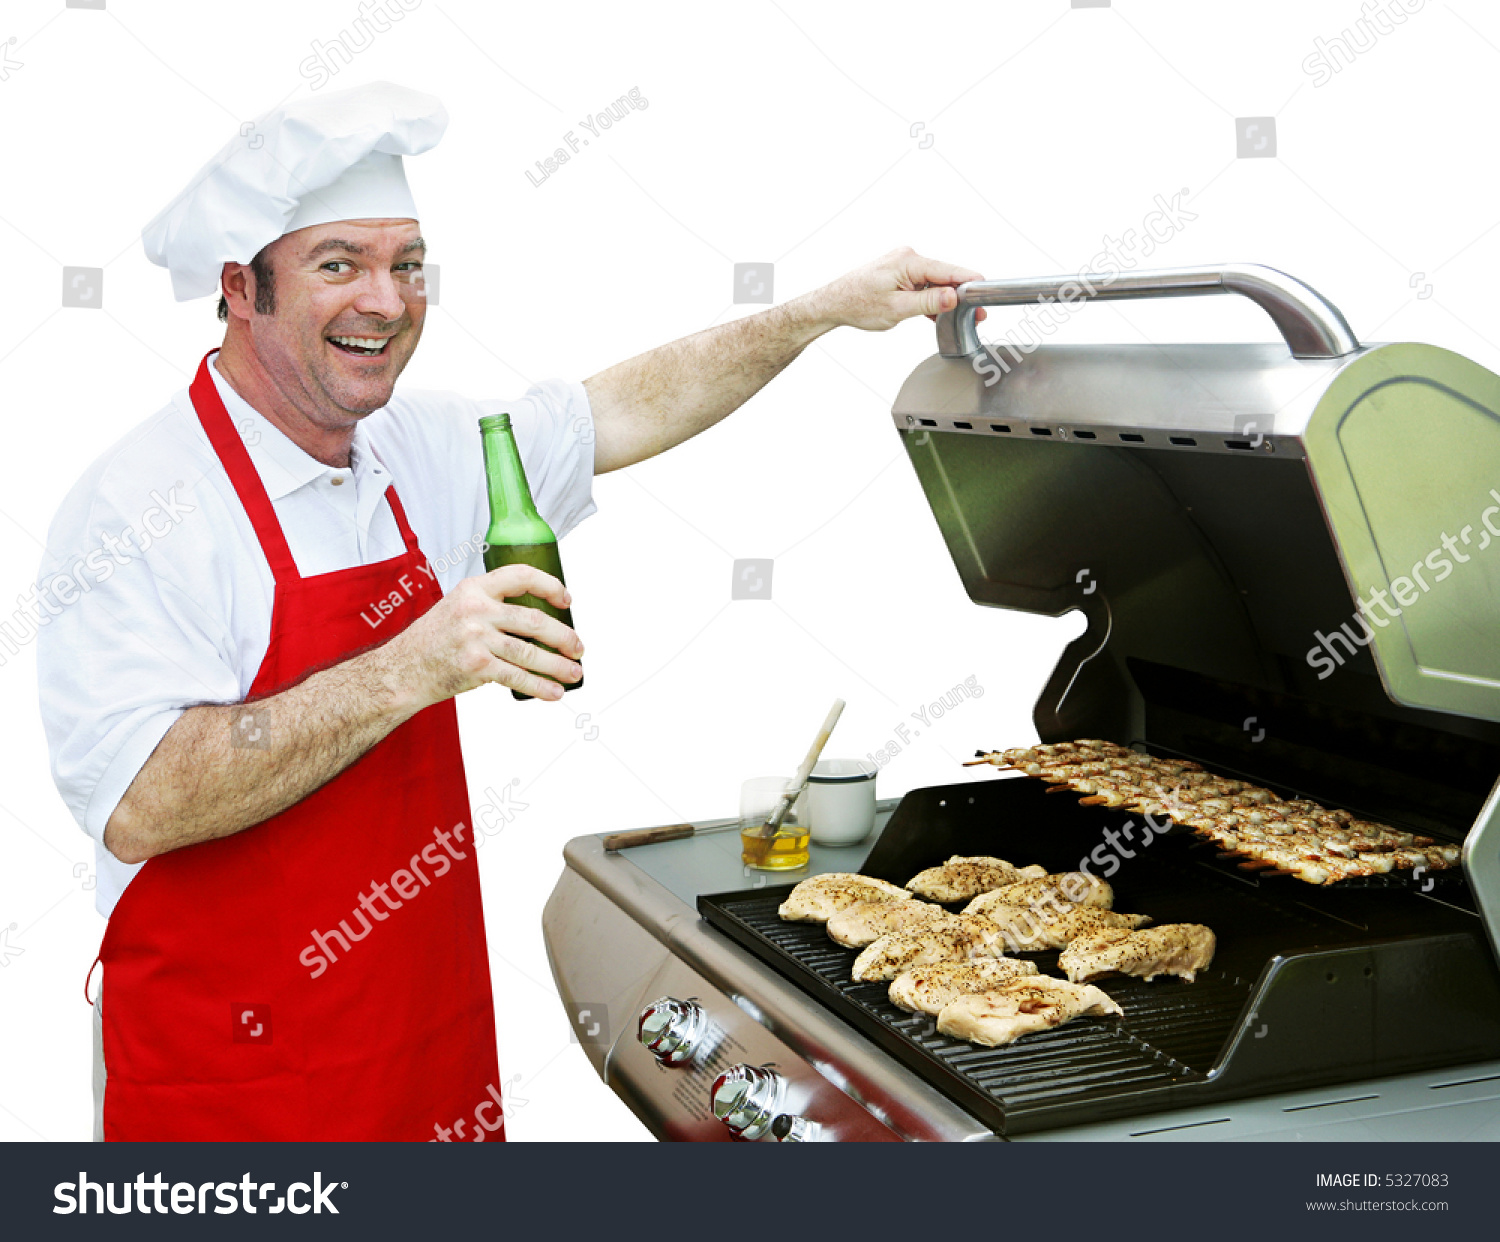 Happy Smiling Cook Making Dinner On Stock Photo 5327083 - Shutterstock